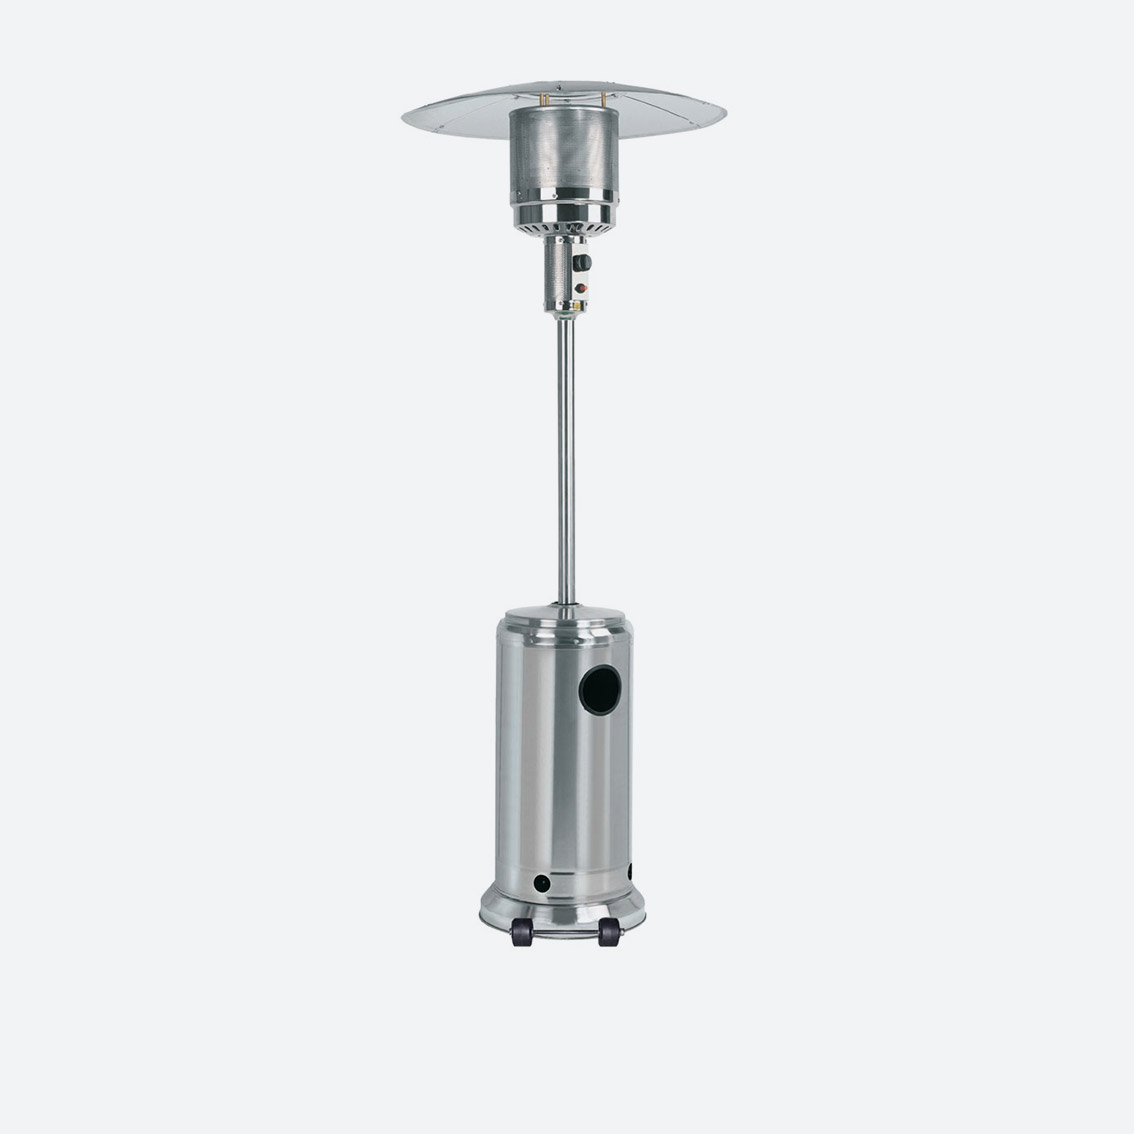 Patio_heater_hire